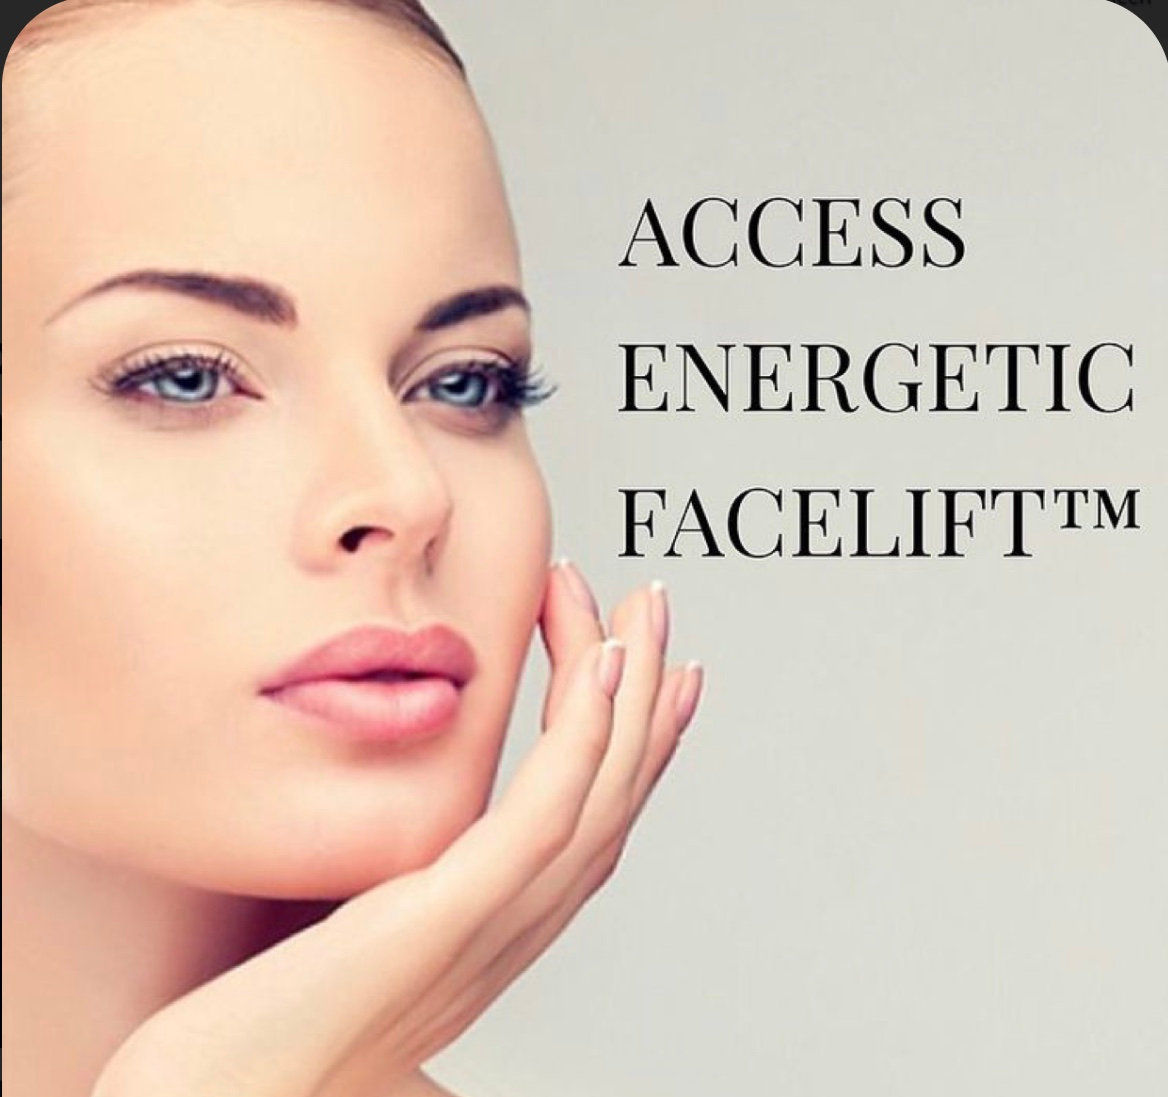 Energy Face Lift Access Bar Session